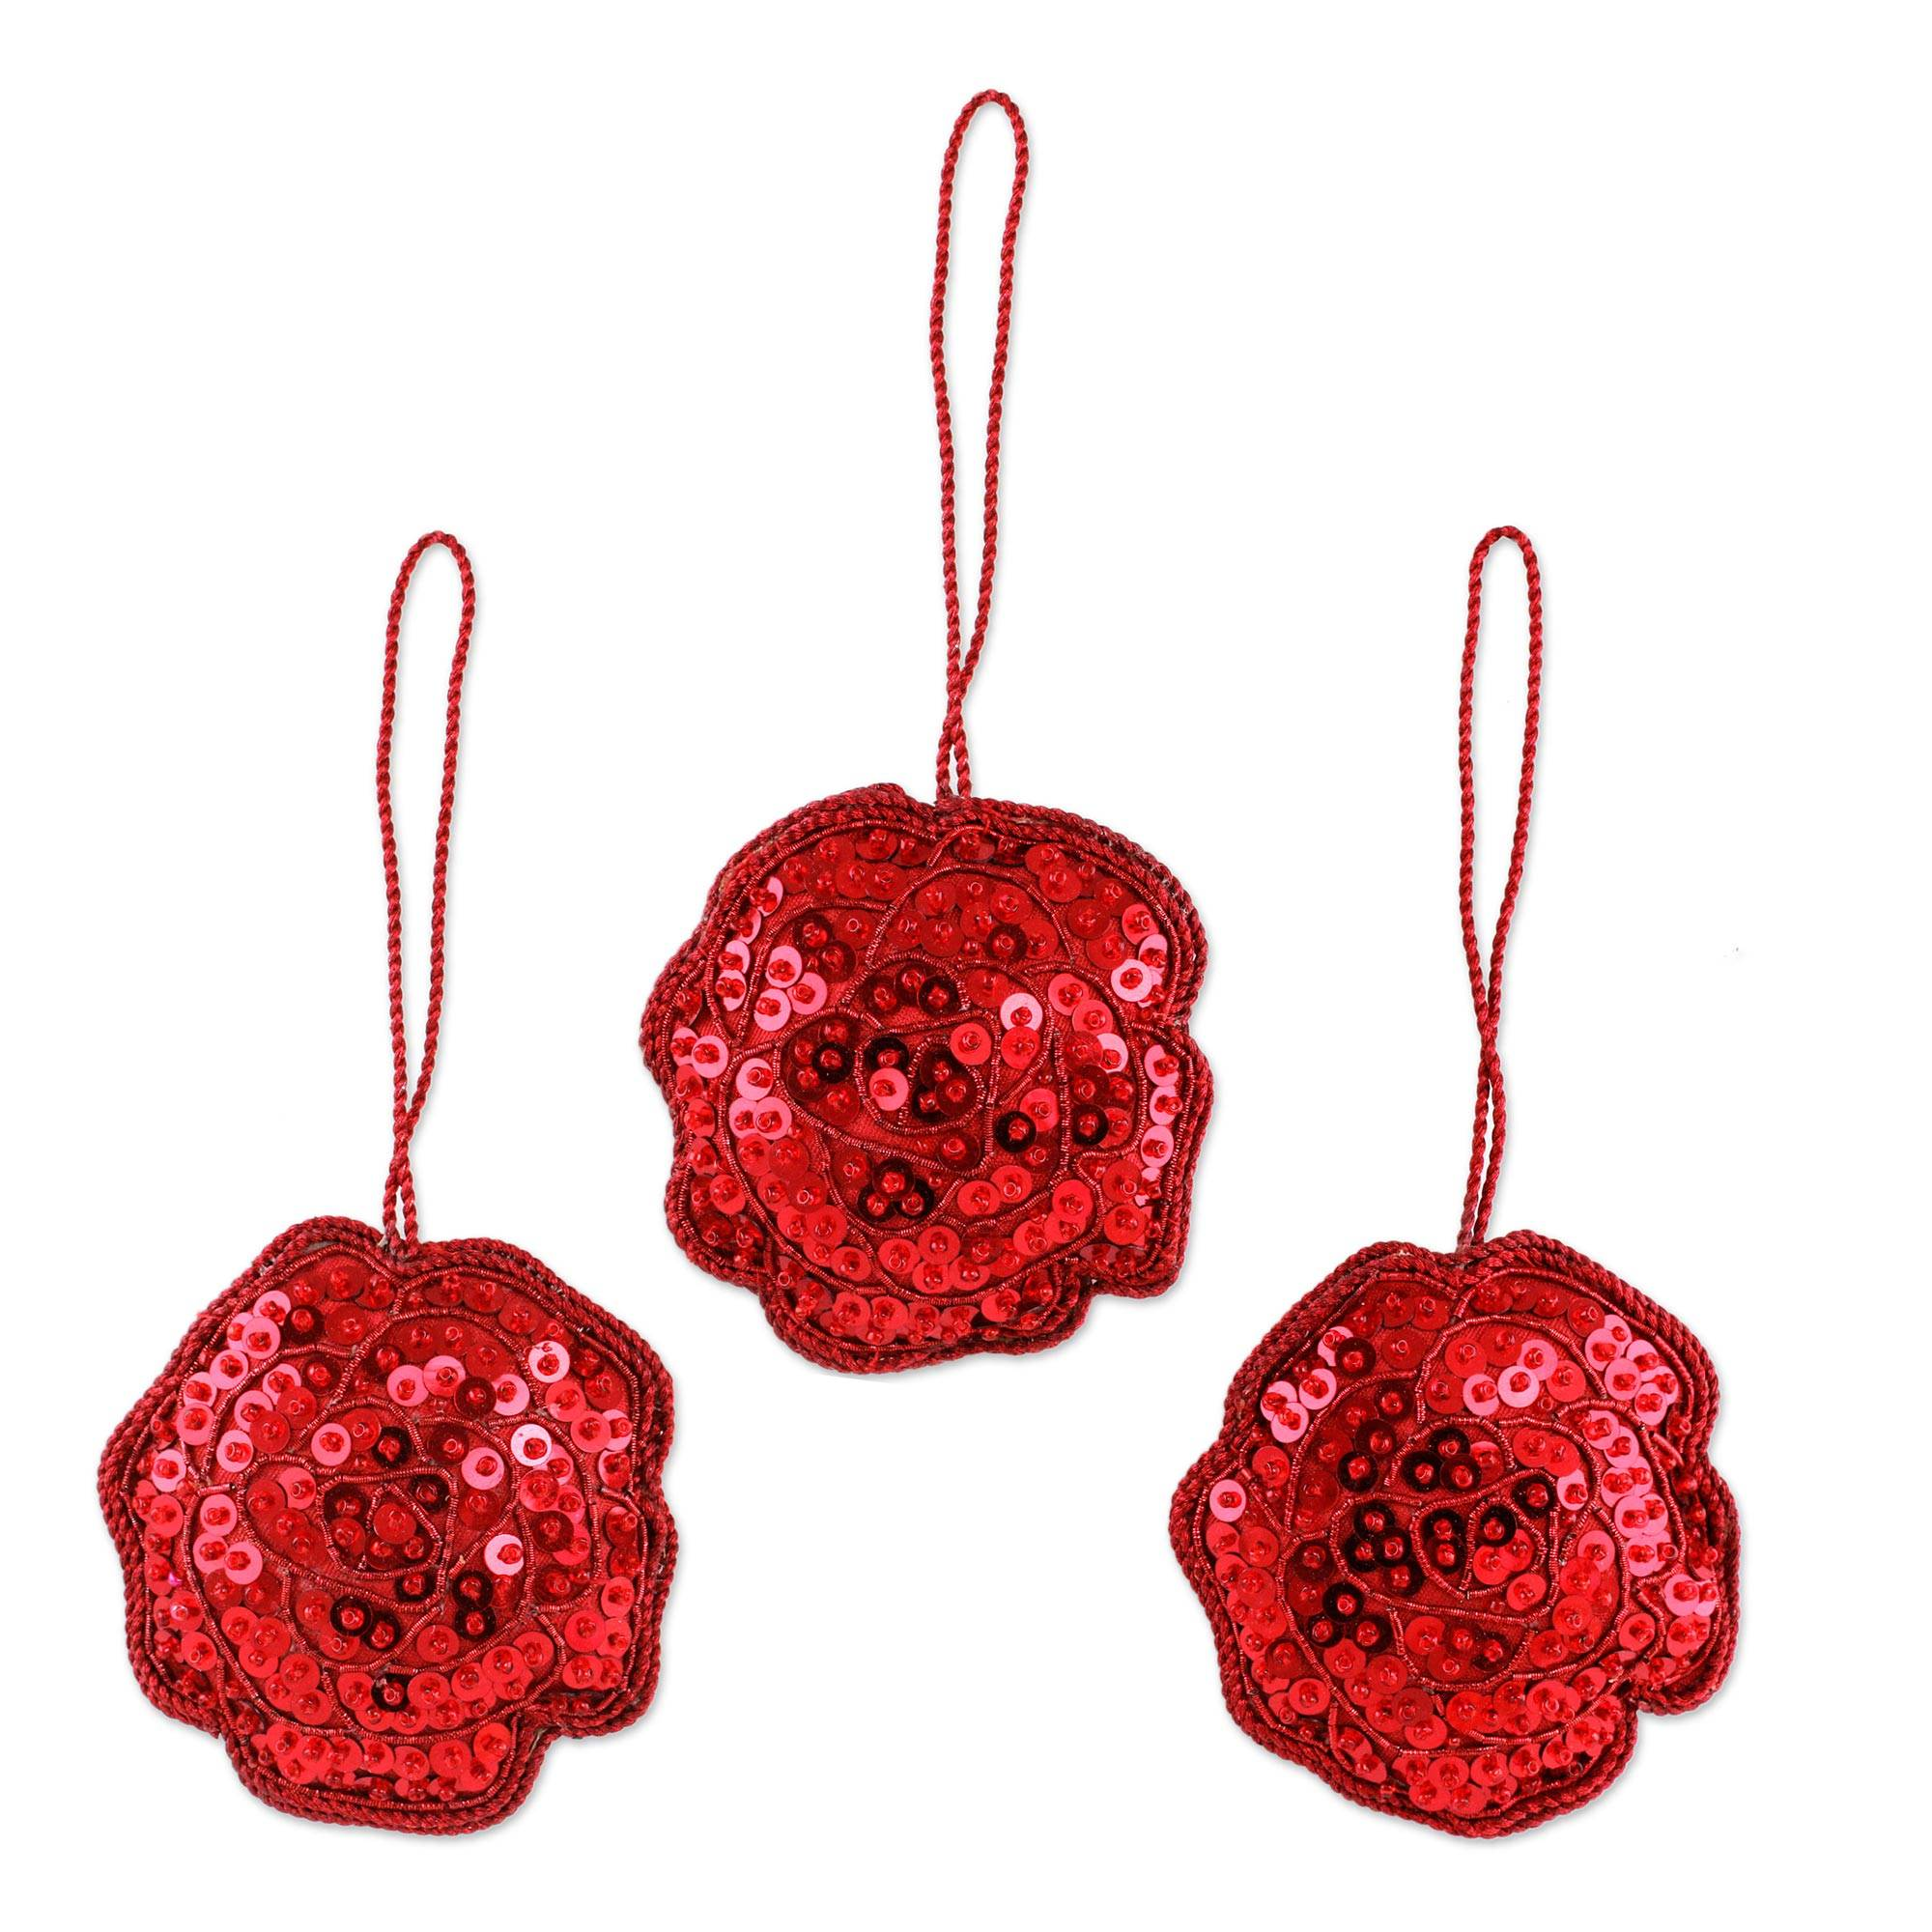 Beaded Christmas Ornaments.Hand Made Beaded Christmas Ornaments Set Of 3 Red Rose Glitz